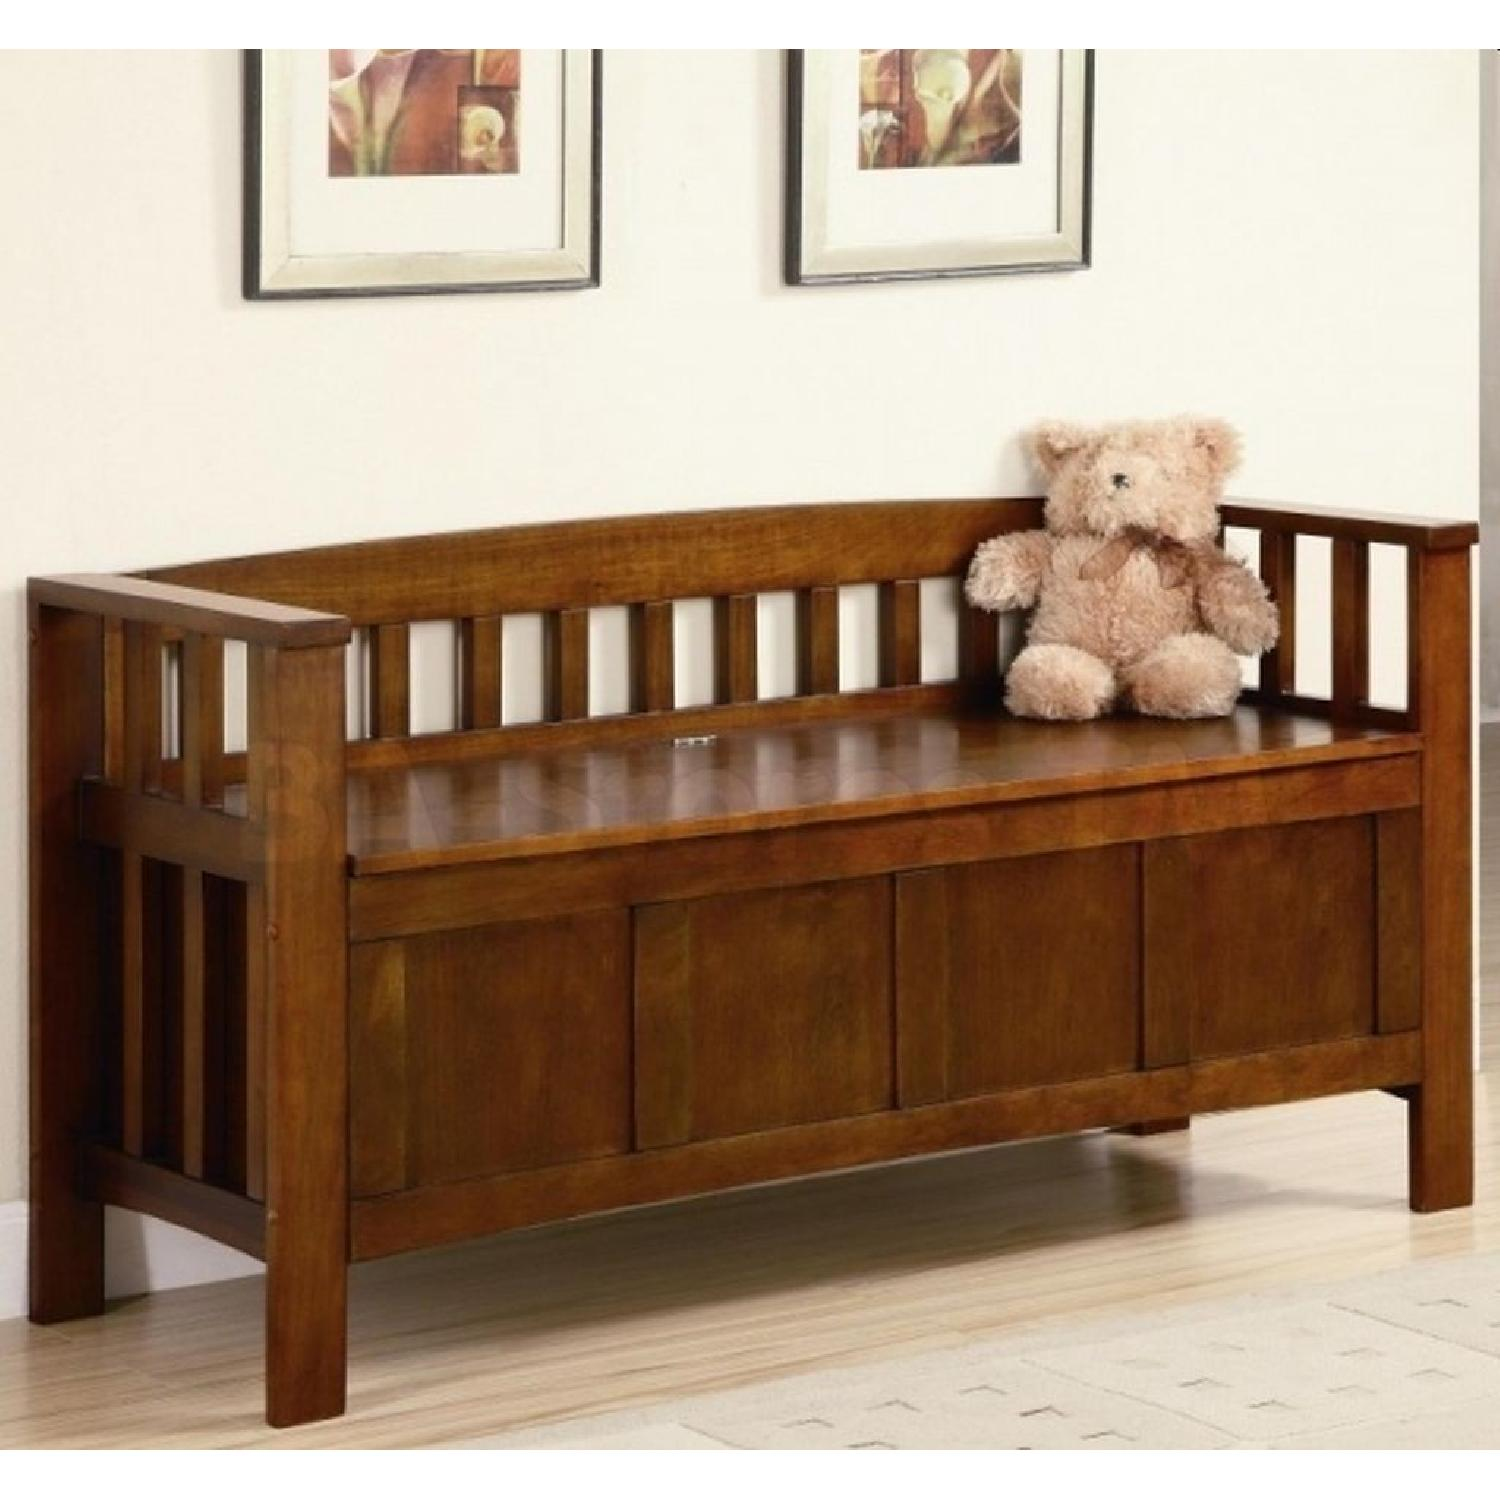 Storage Bench in Brown Finish - image-2